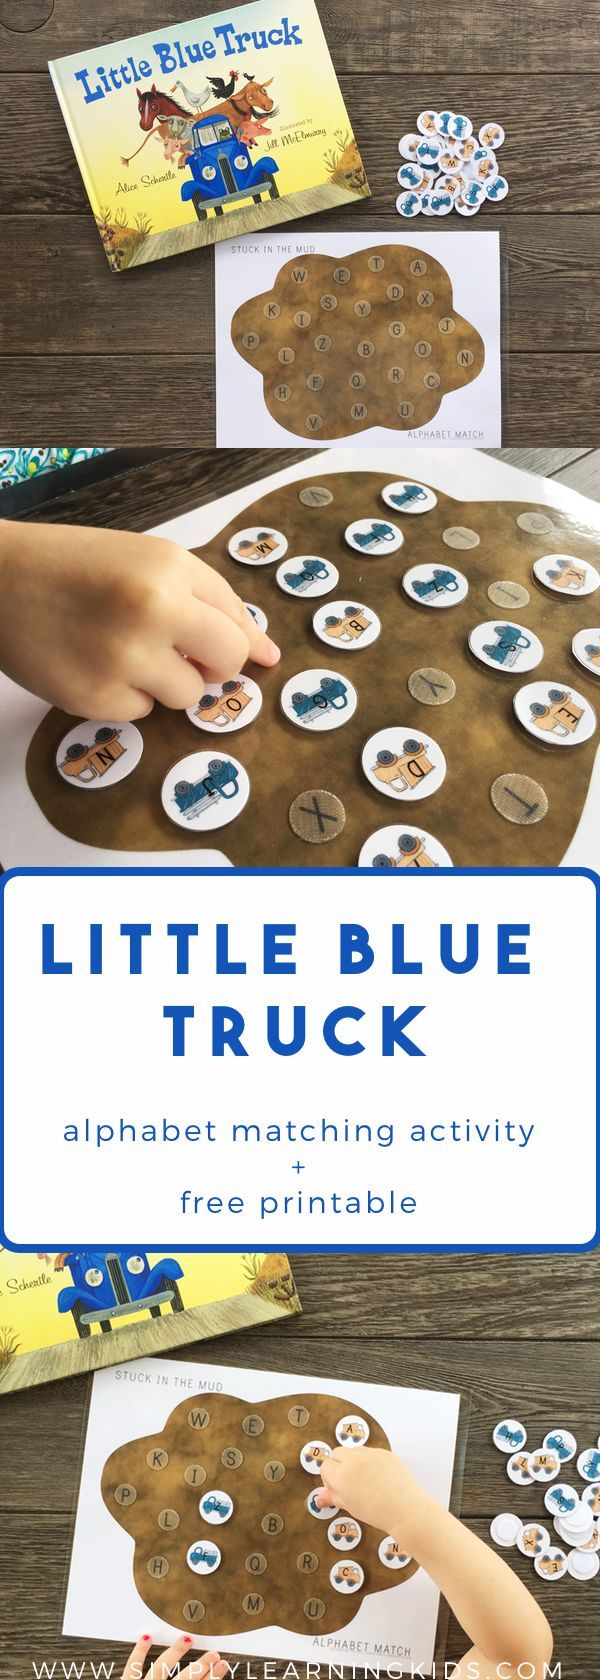 Little Blue Truck Stuck In The Mud Alphabet Match - Free Printable!